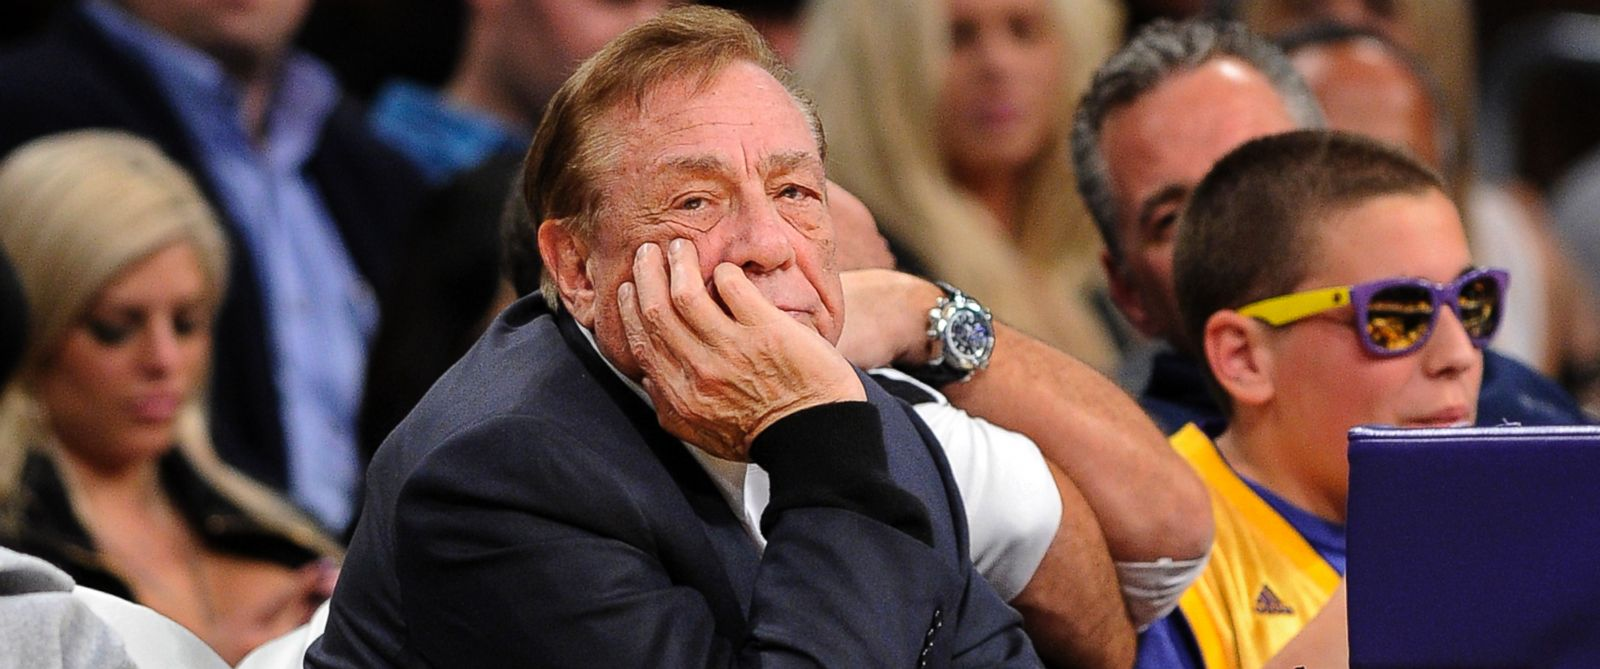 PHOTO: Los Angeles Clippers owner Donald Sterling looks on during the first half of their NBA basketball game against the Los Angeles Lakers in Los Angeles, Calif., Feb. 25, 2011.